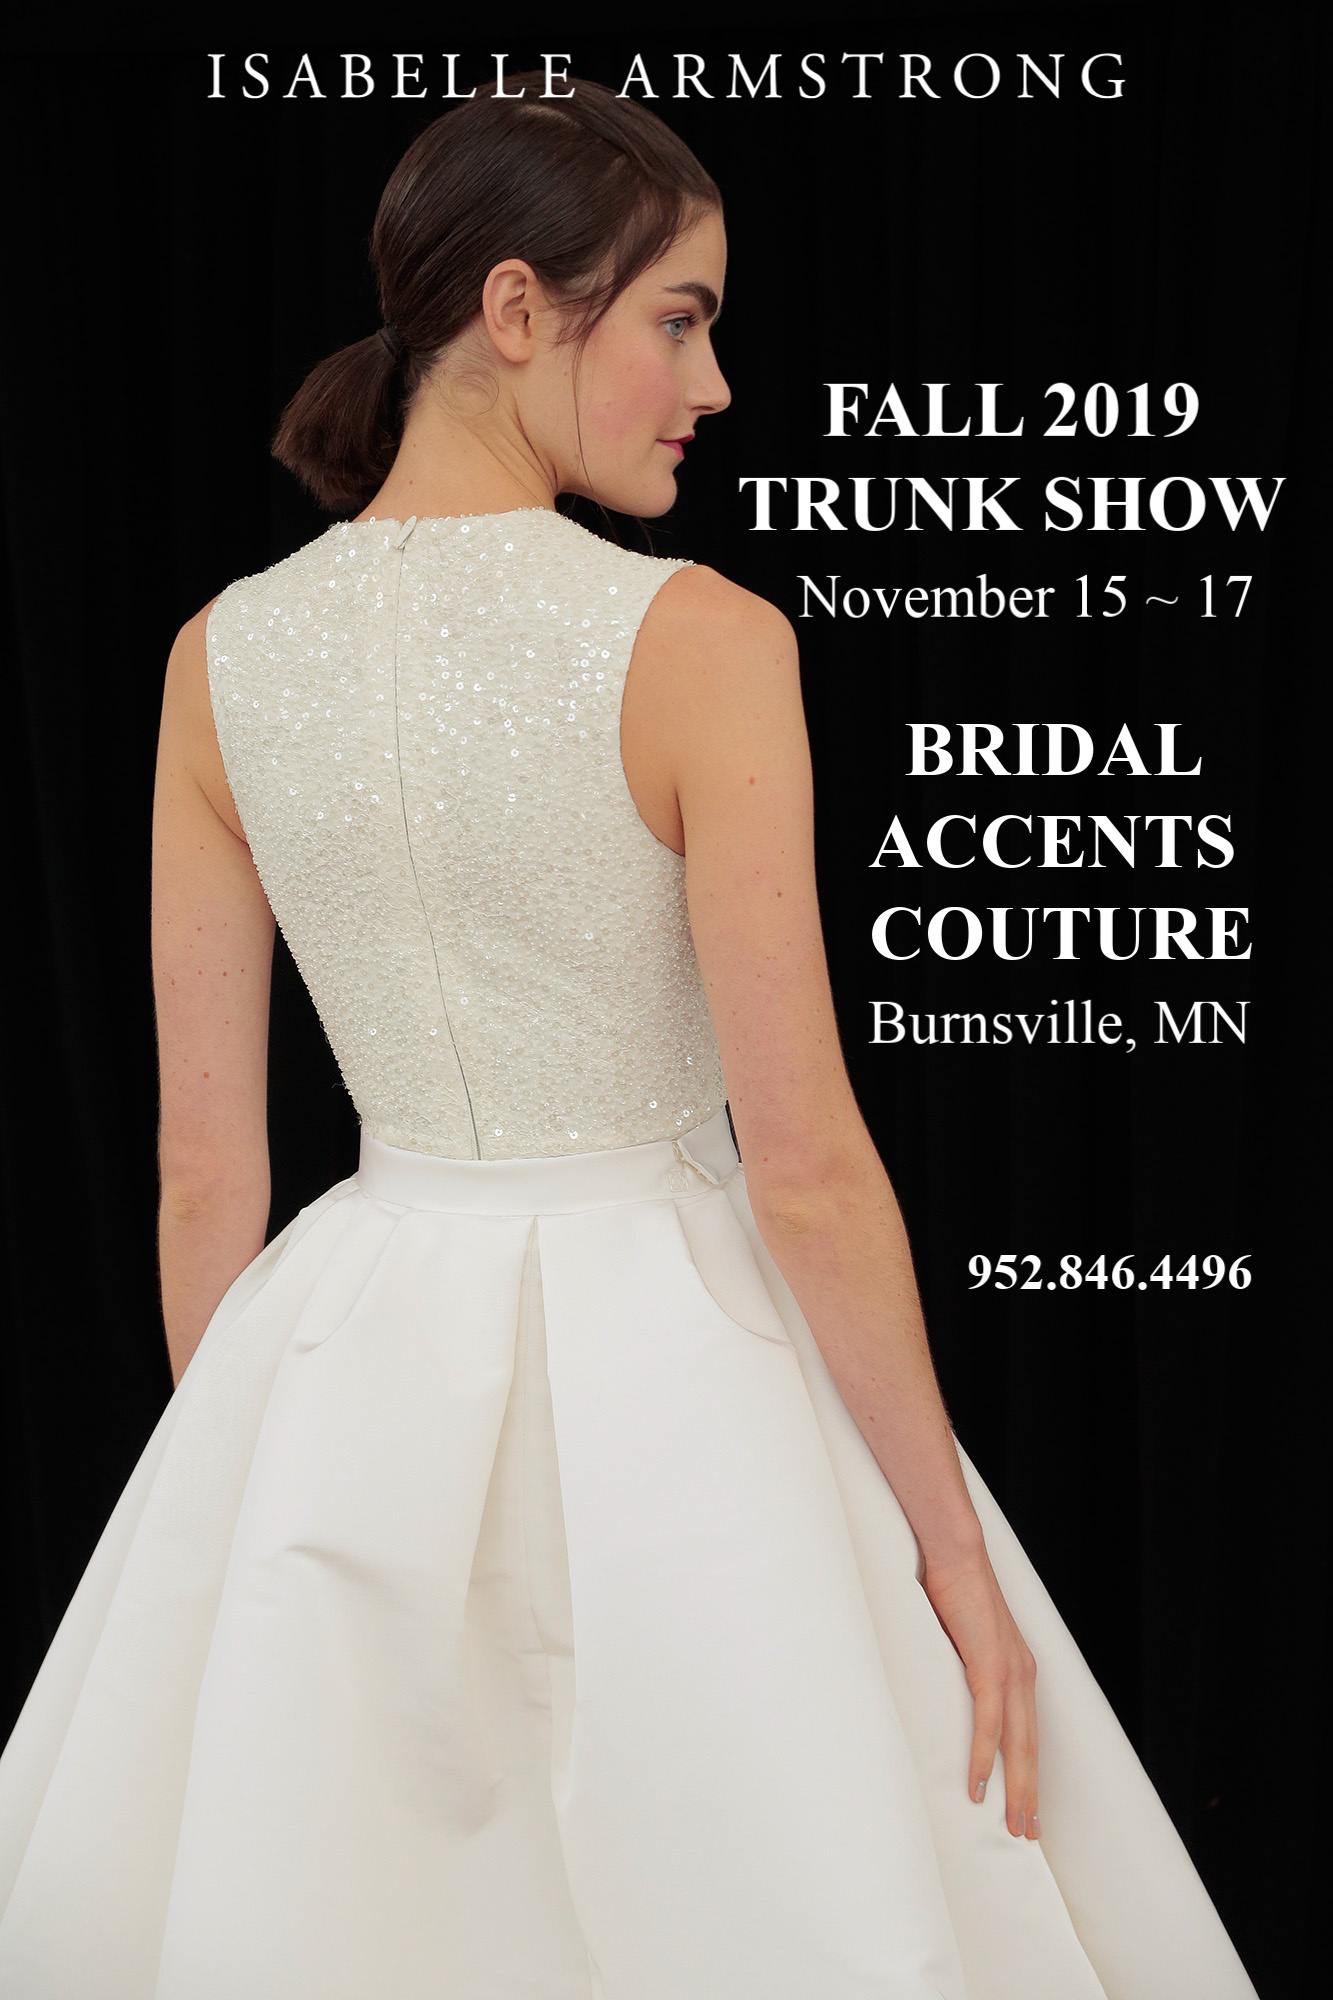 IA TRUNK SHOW - BRIDAL ACCENTS 11-15-18.jpg